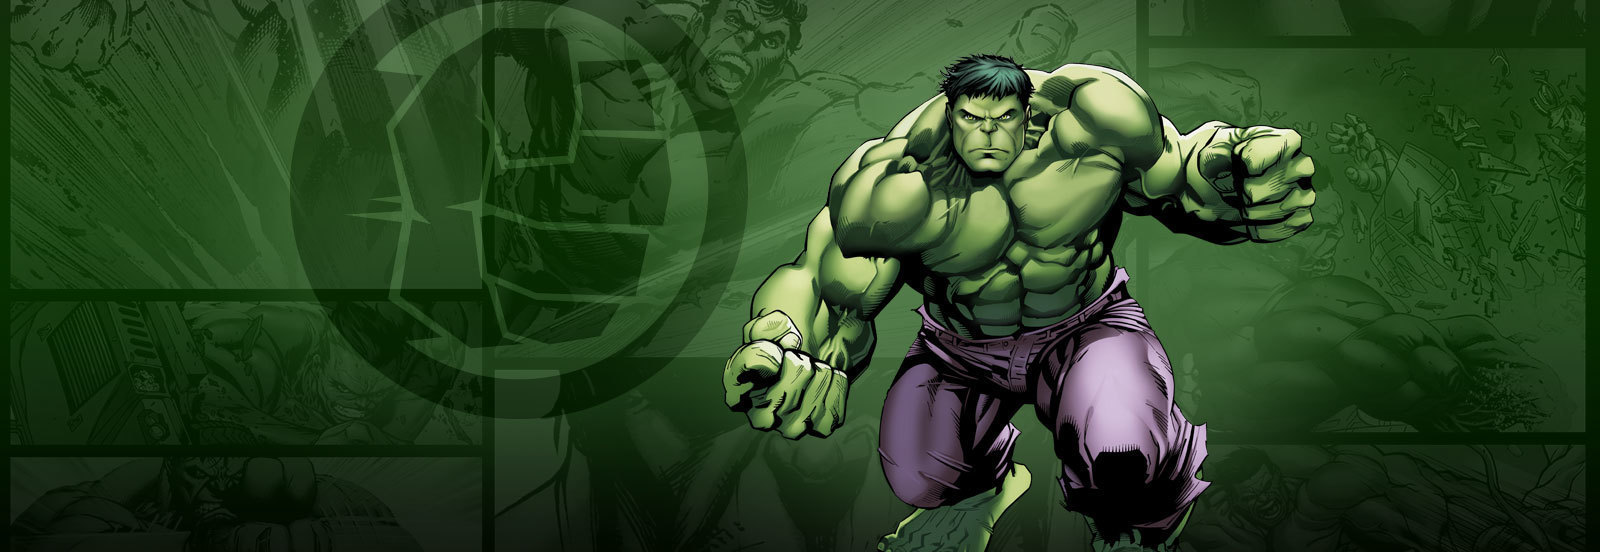 incredible hulk marvel avenger superhero background hd wallpaper